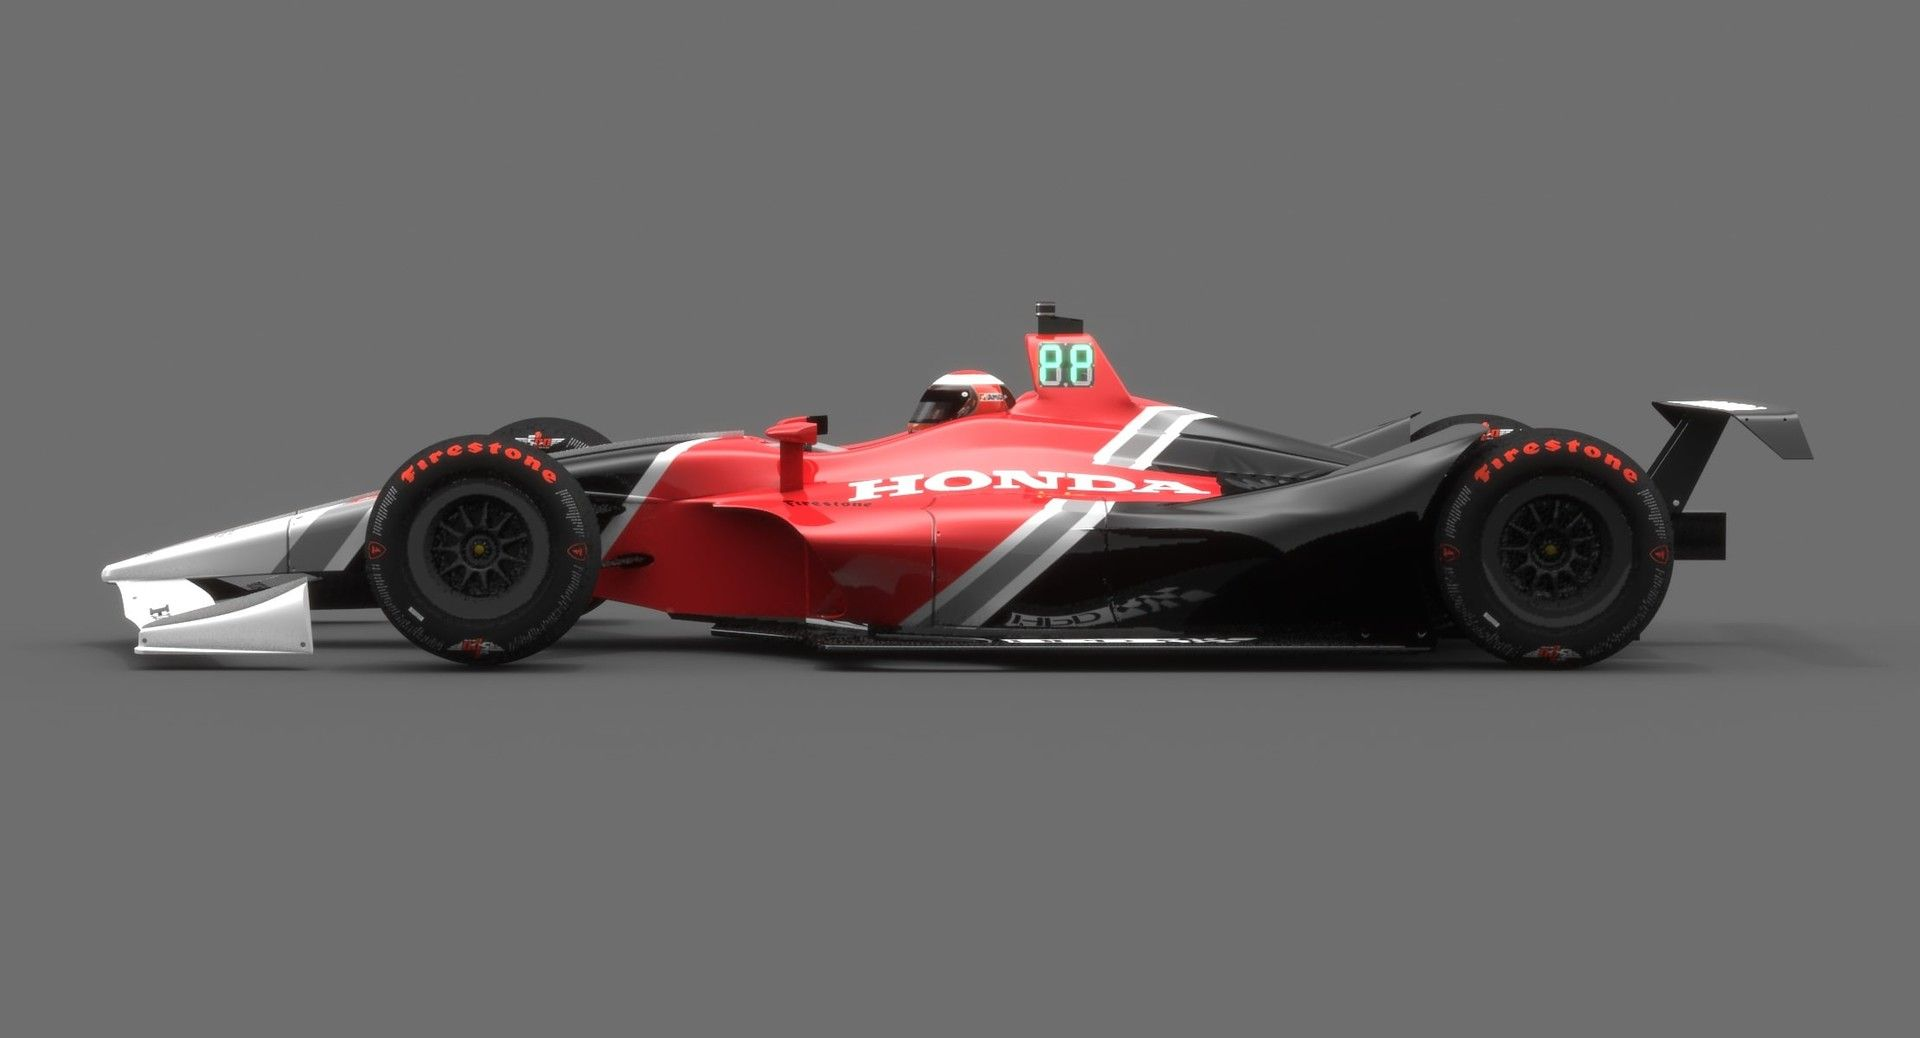 Image Result For 2018 Indycar Indy Cars Car Competitions Honda